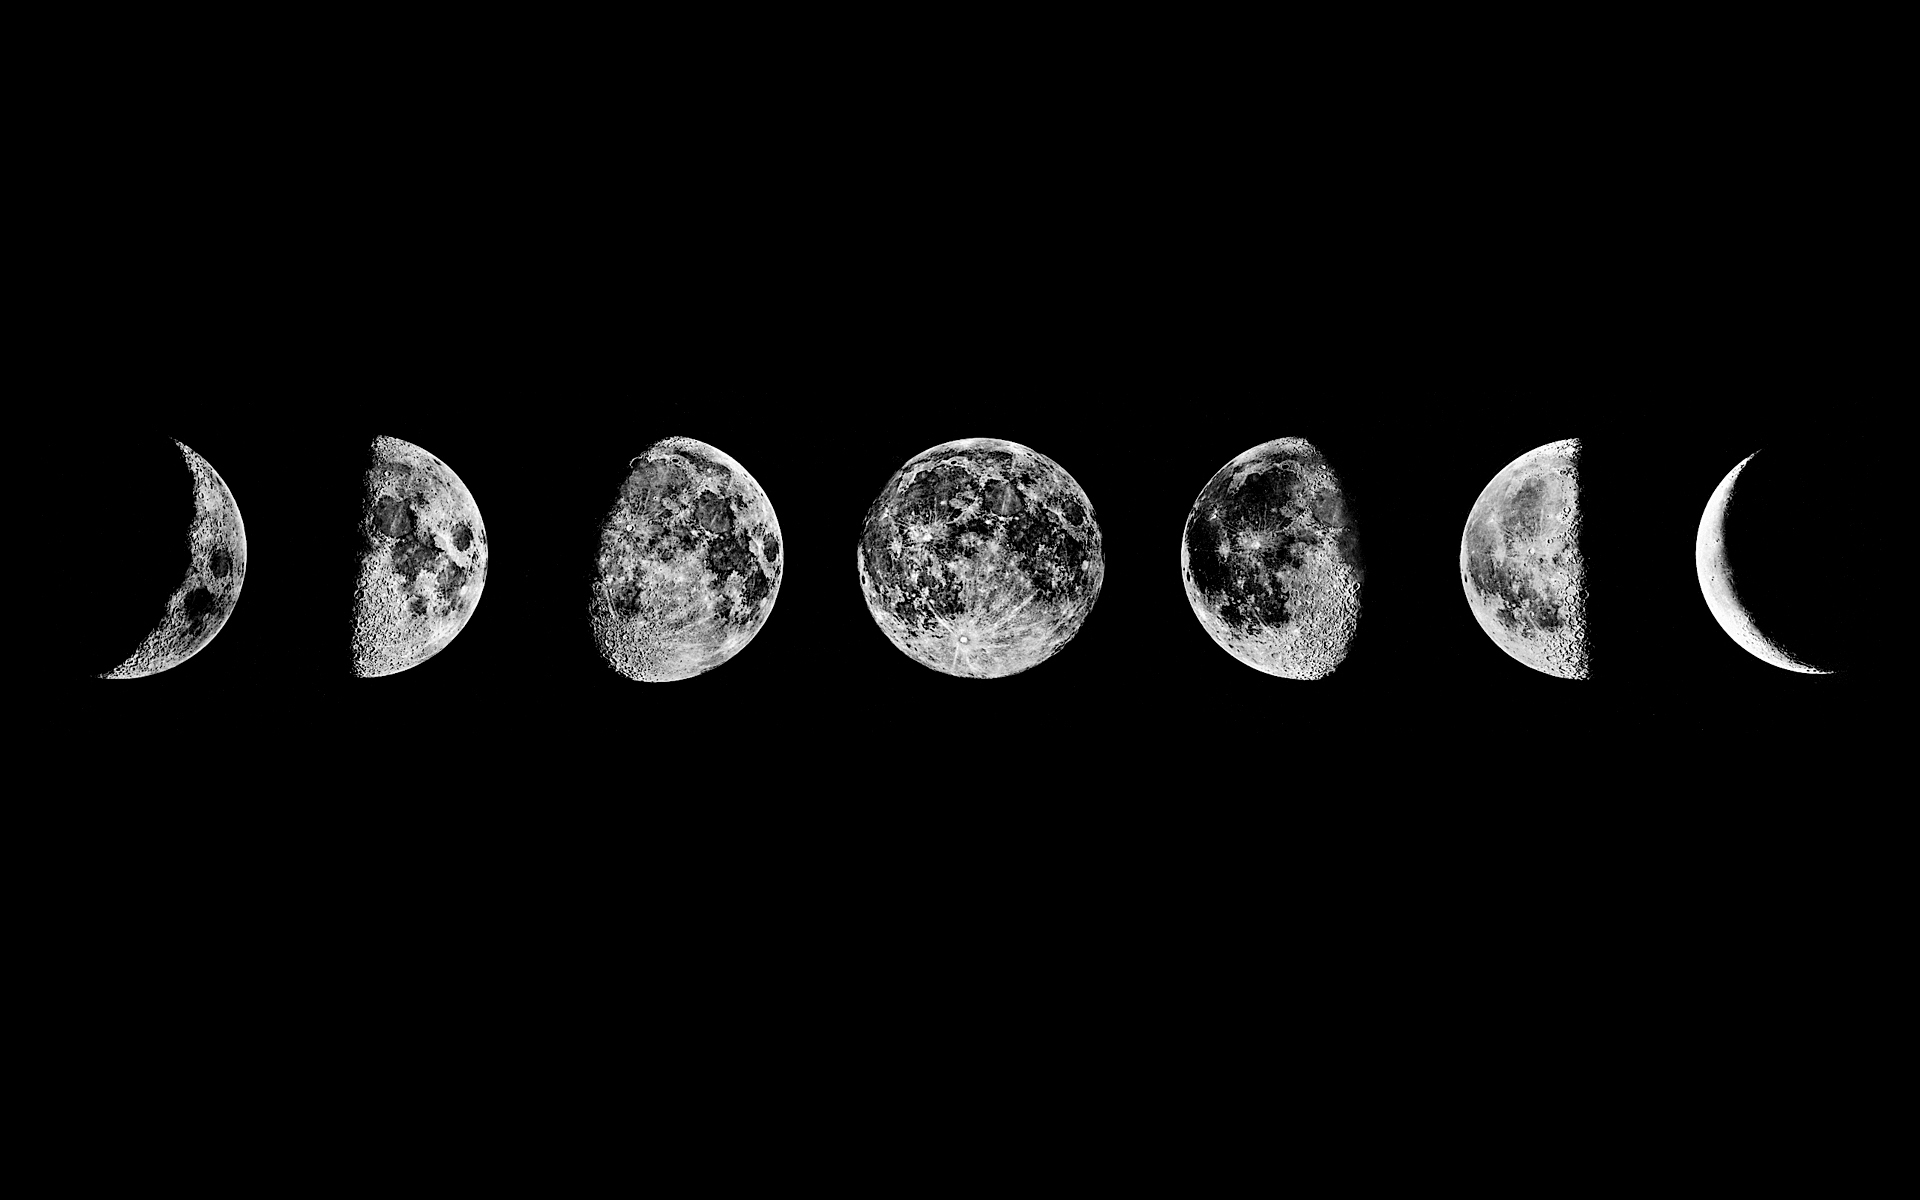 moon phases wallpapers hd full wallpaper desktop res 1920x1200px